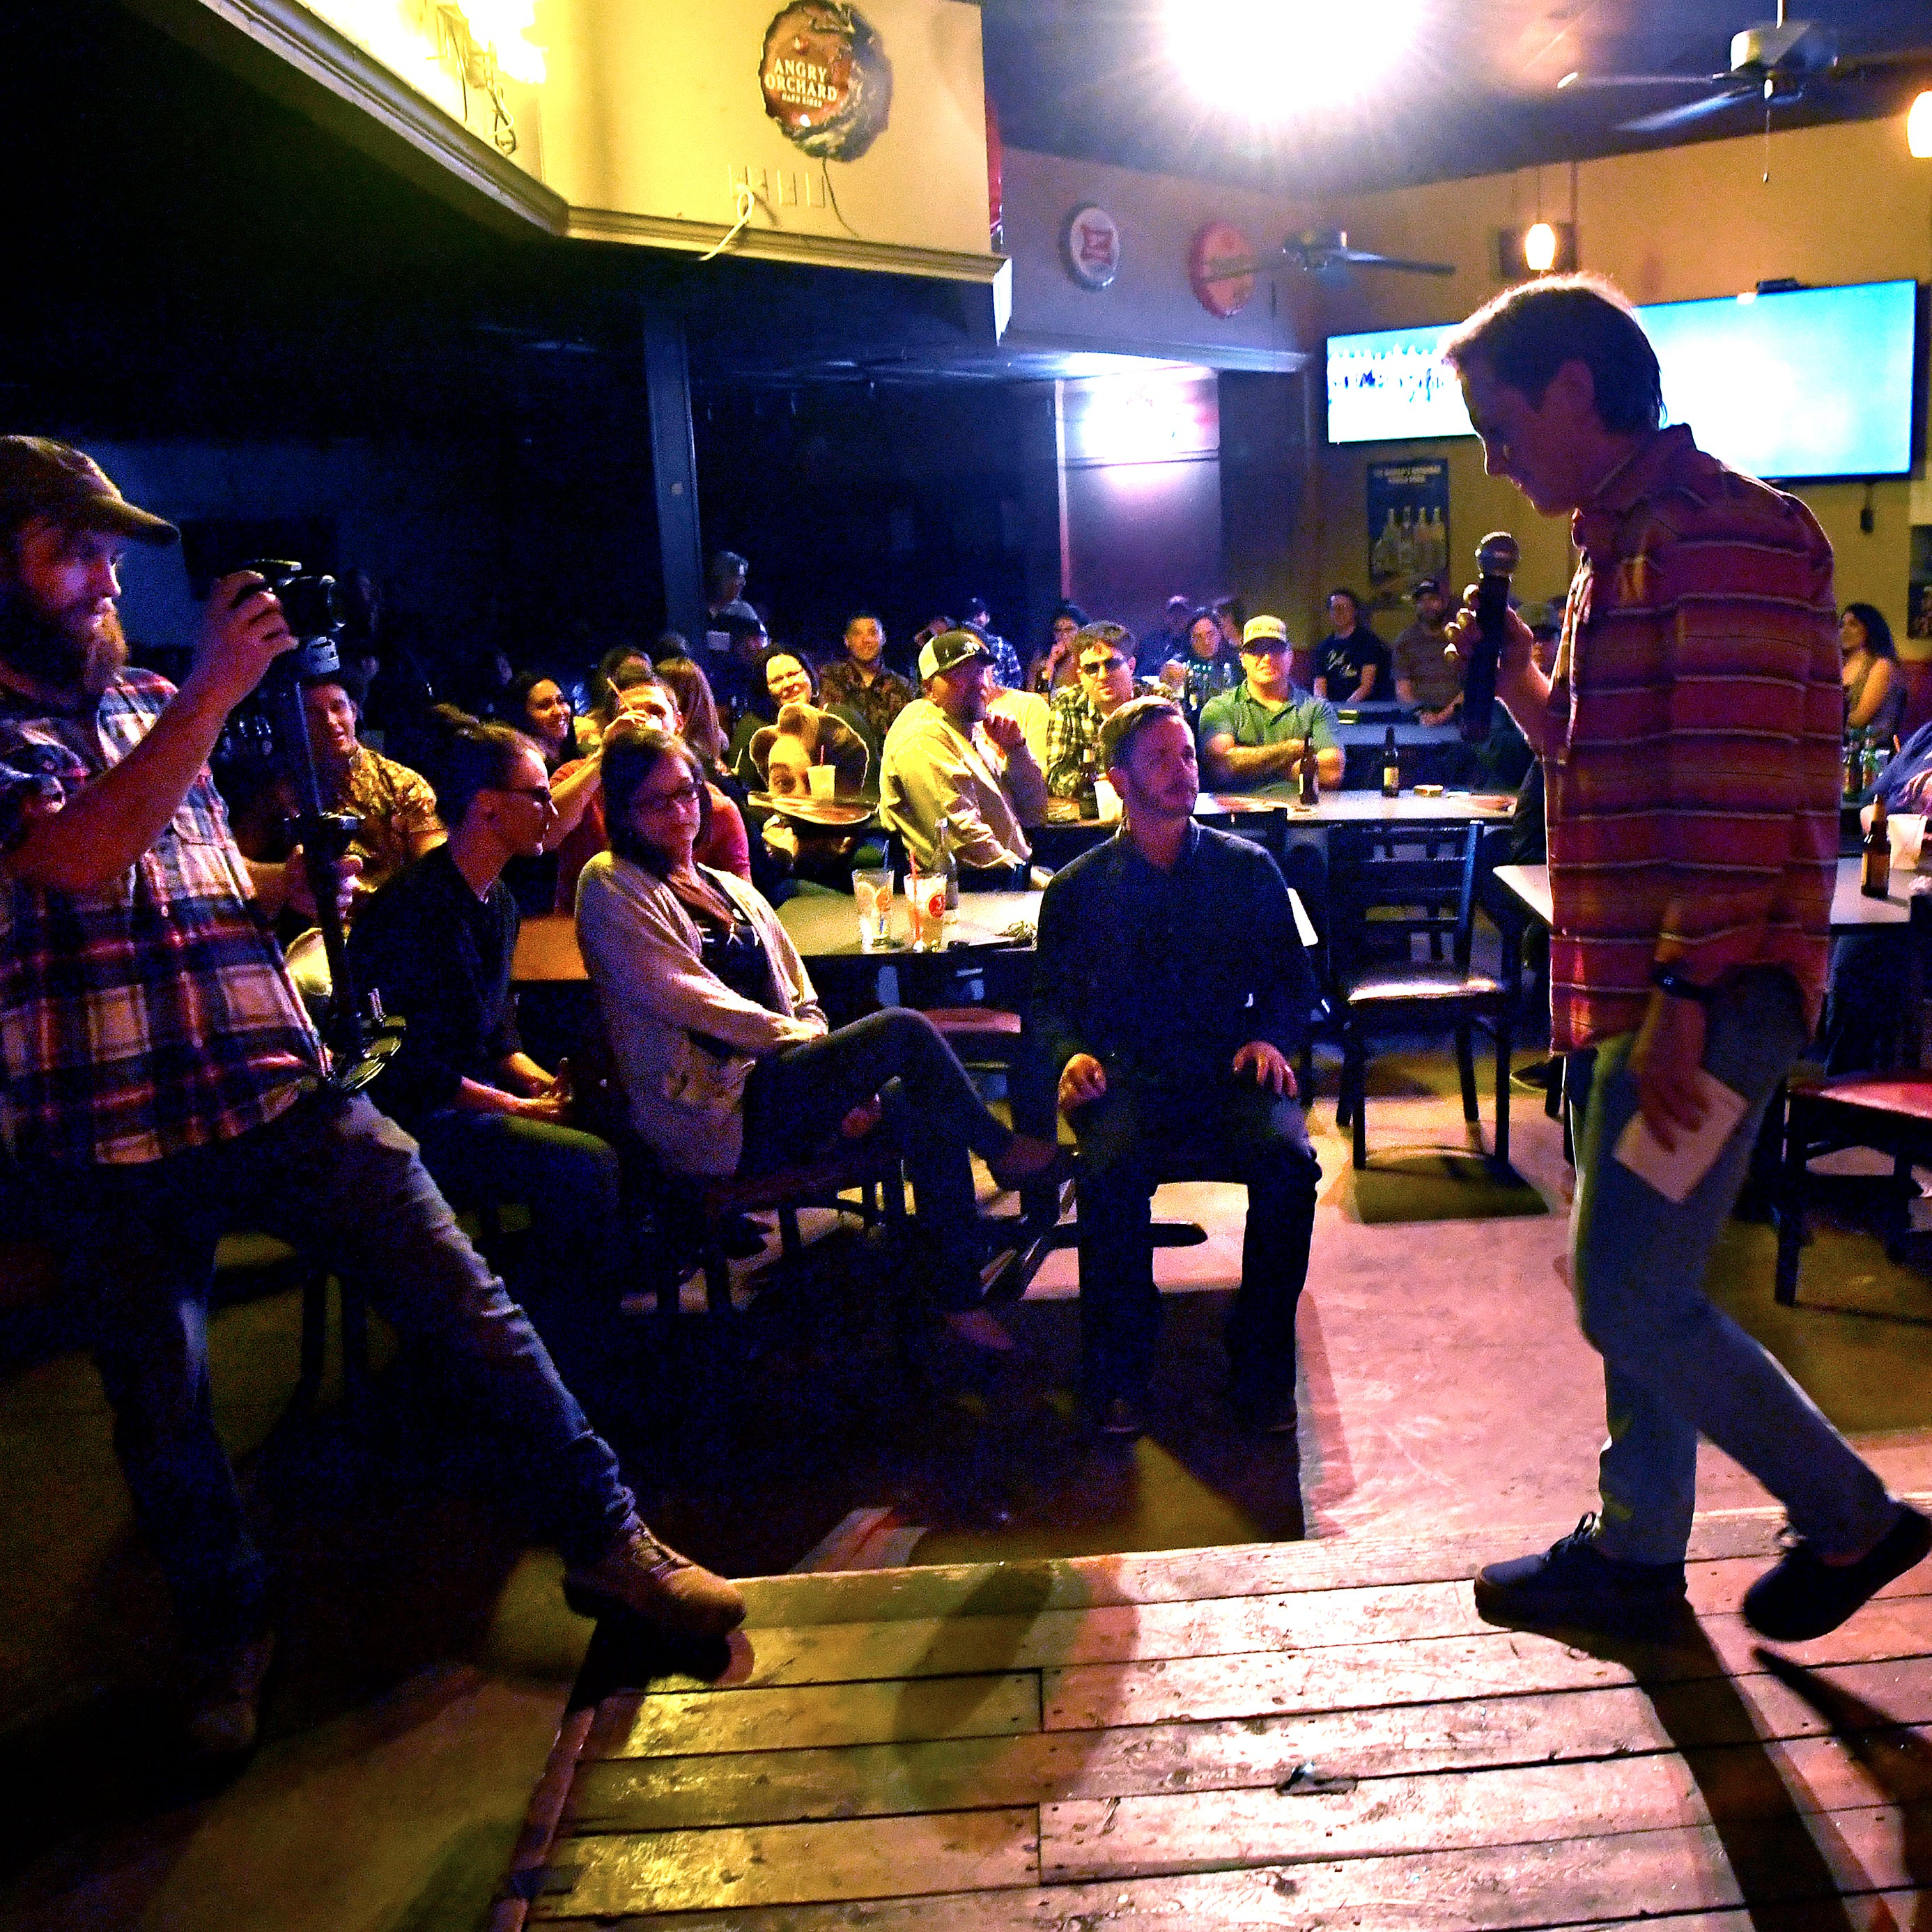 Abilene's stand-up comedy scene keeps growing as talent takes over The Zone stage